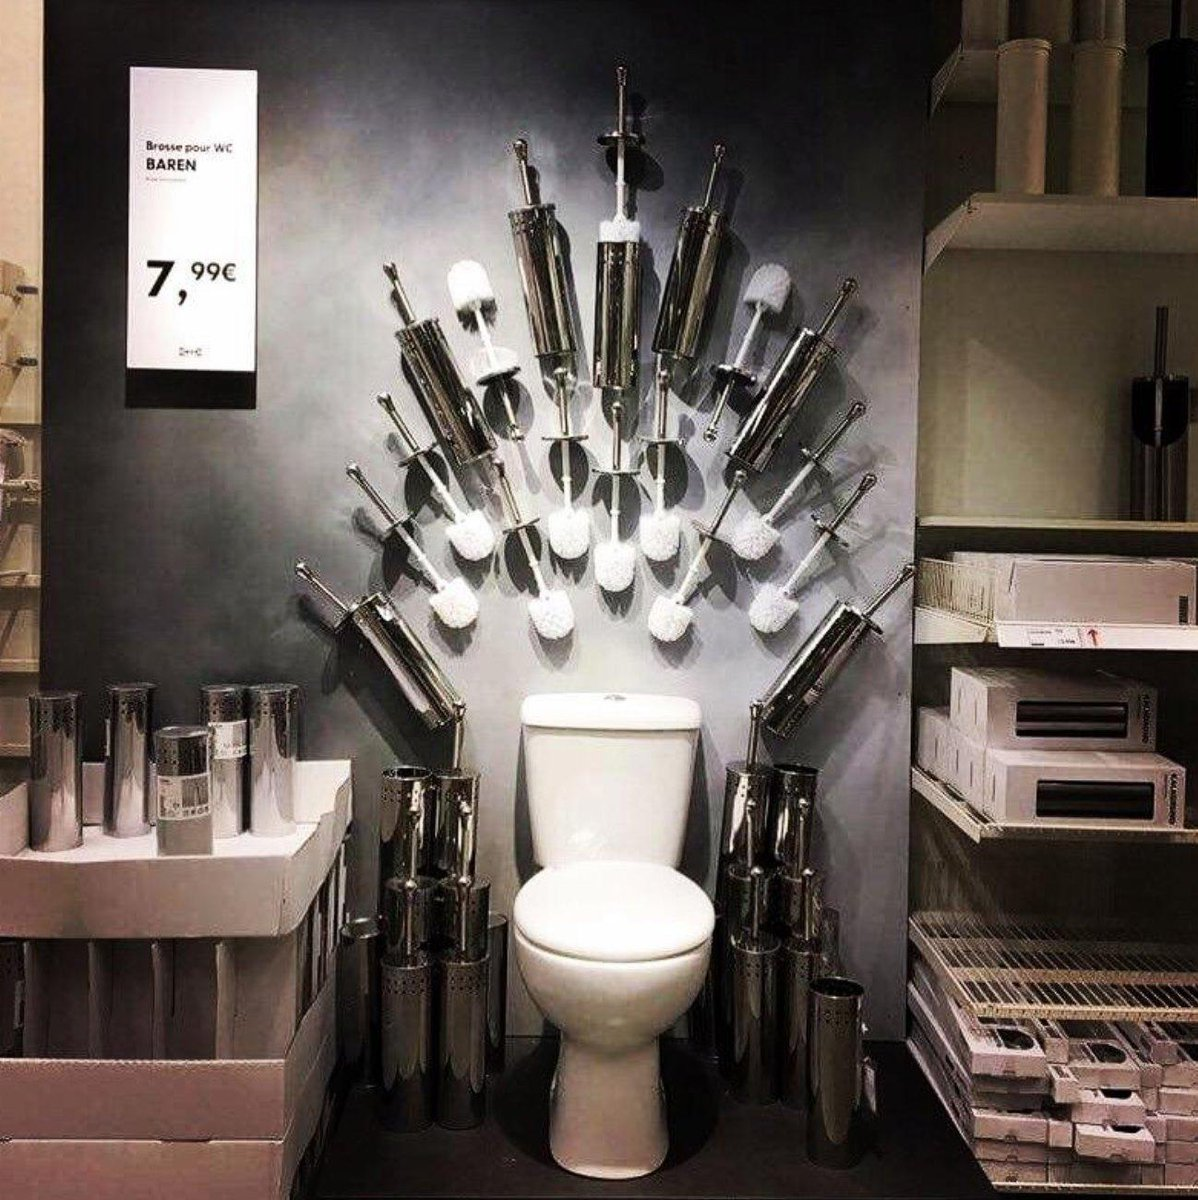 Game of Thrones in IKEA <br>http://pic.twitter.com/4UUxQIPX3i